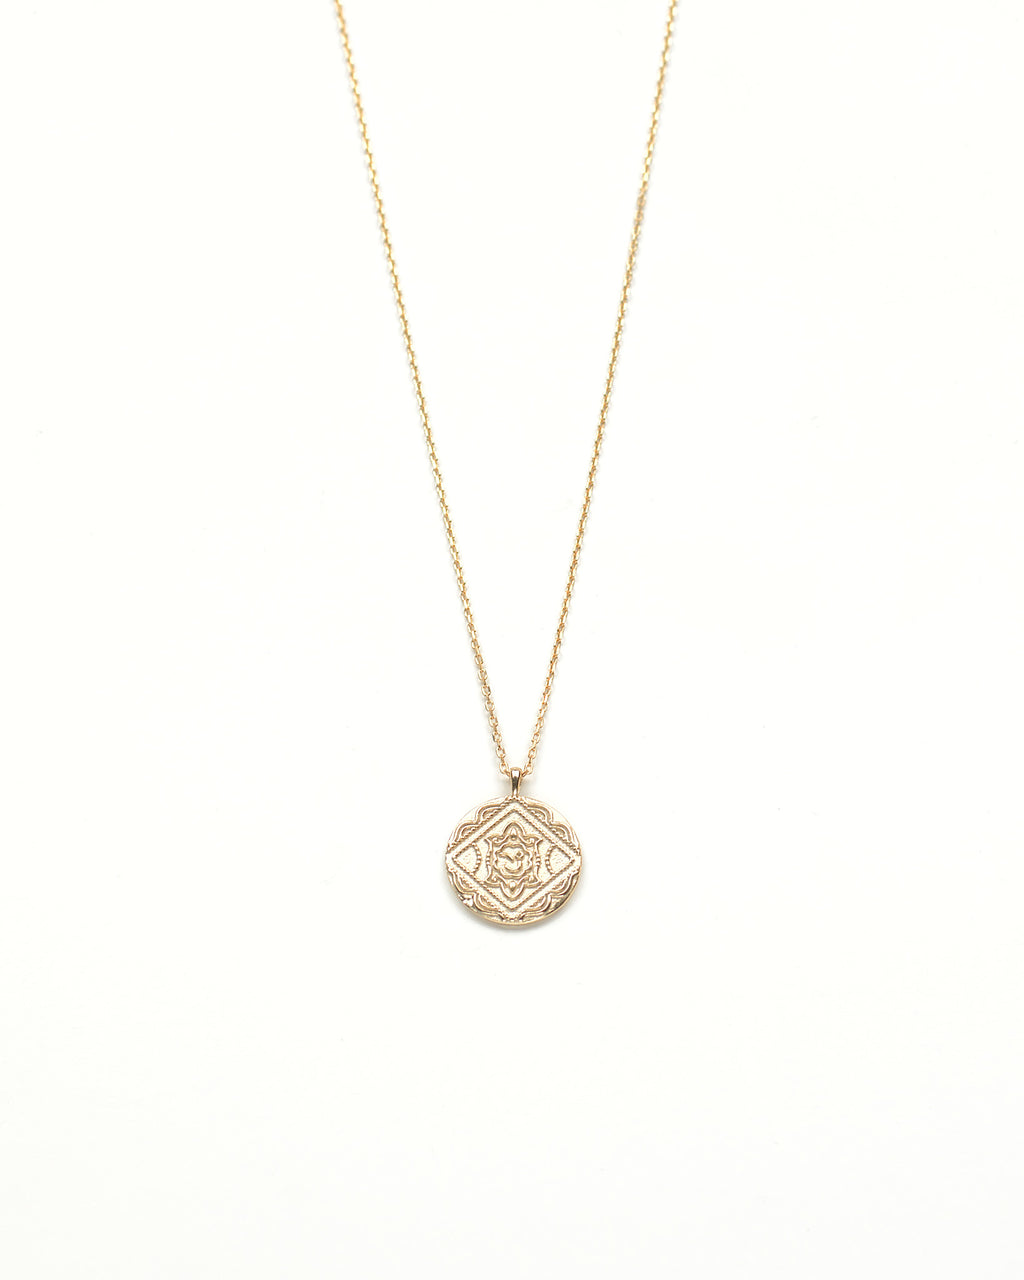 18k gold plated sterling silver medallion and necklace